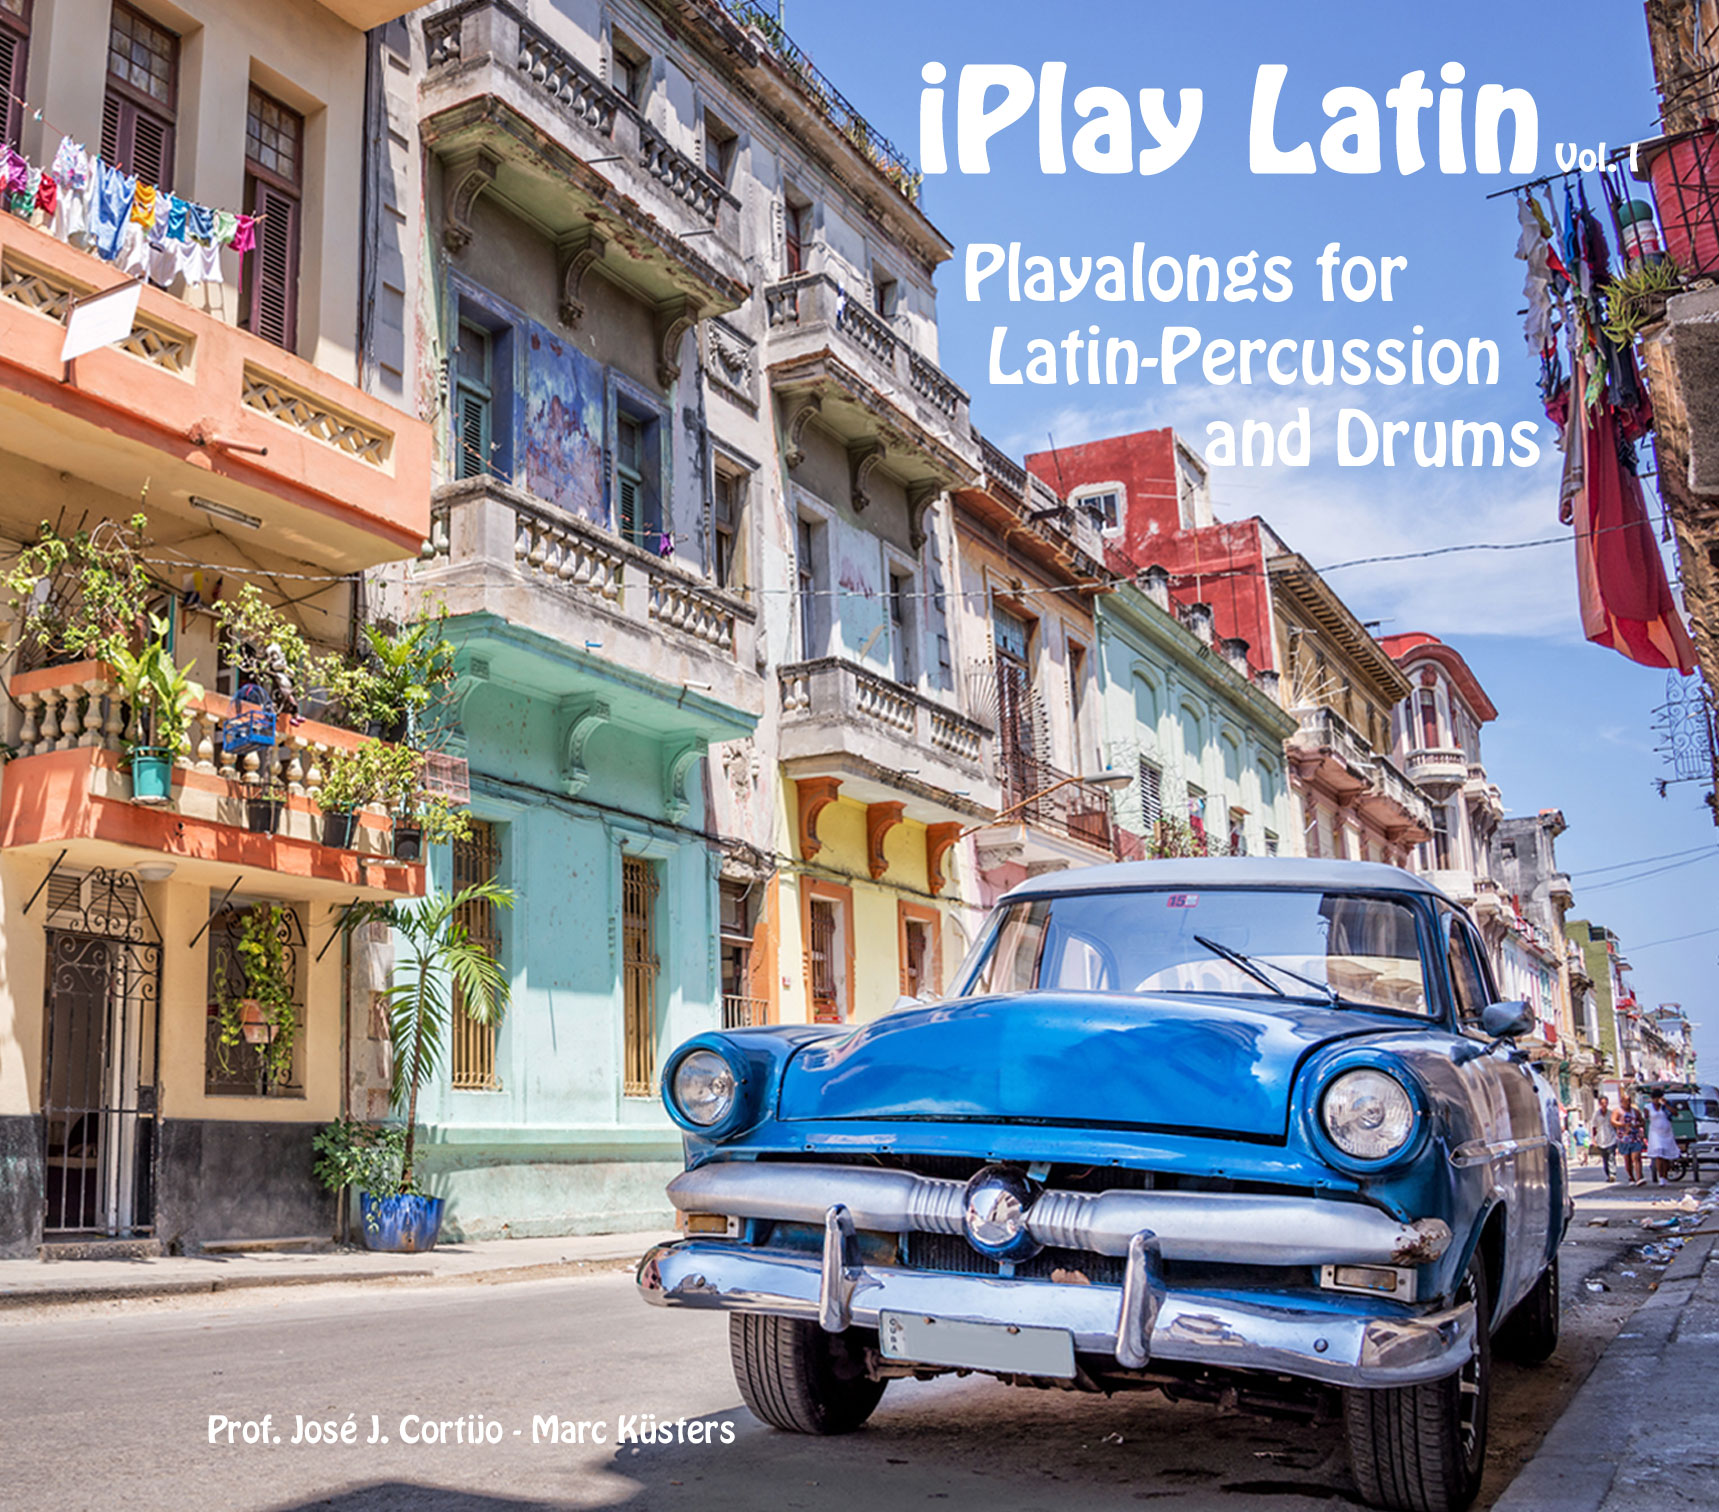 <b>iPlay Latin Vol. I </b>